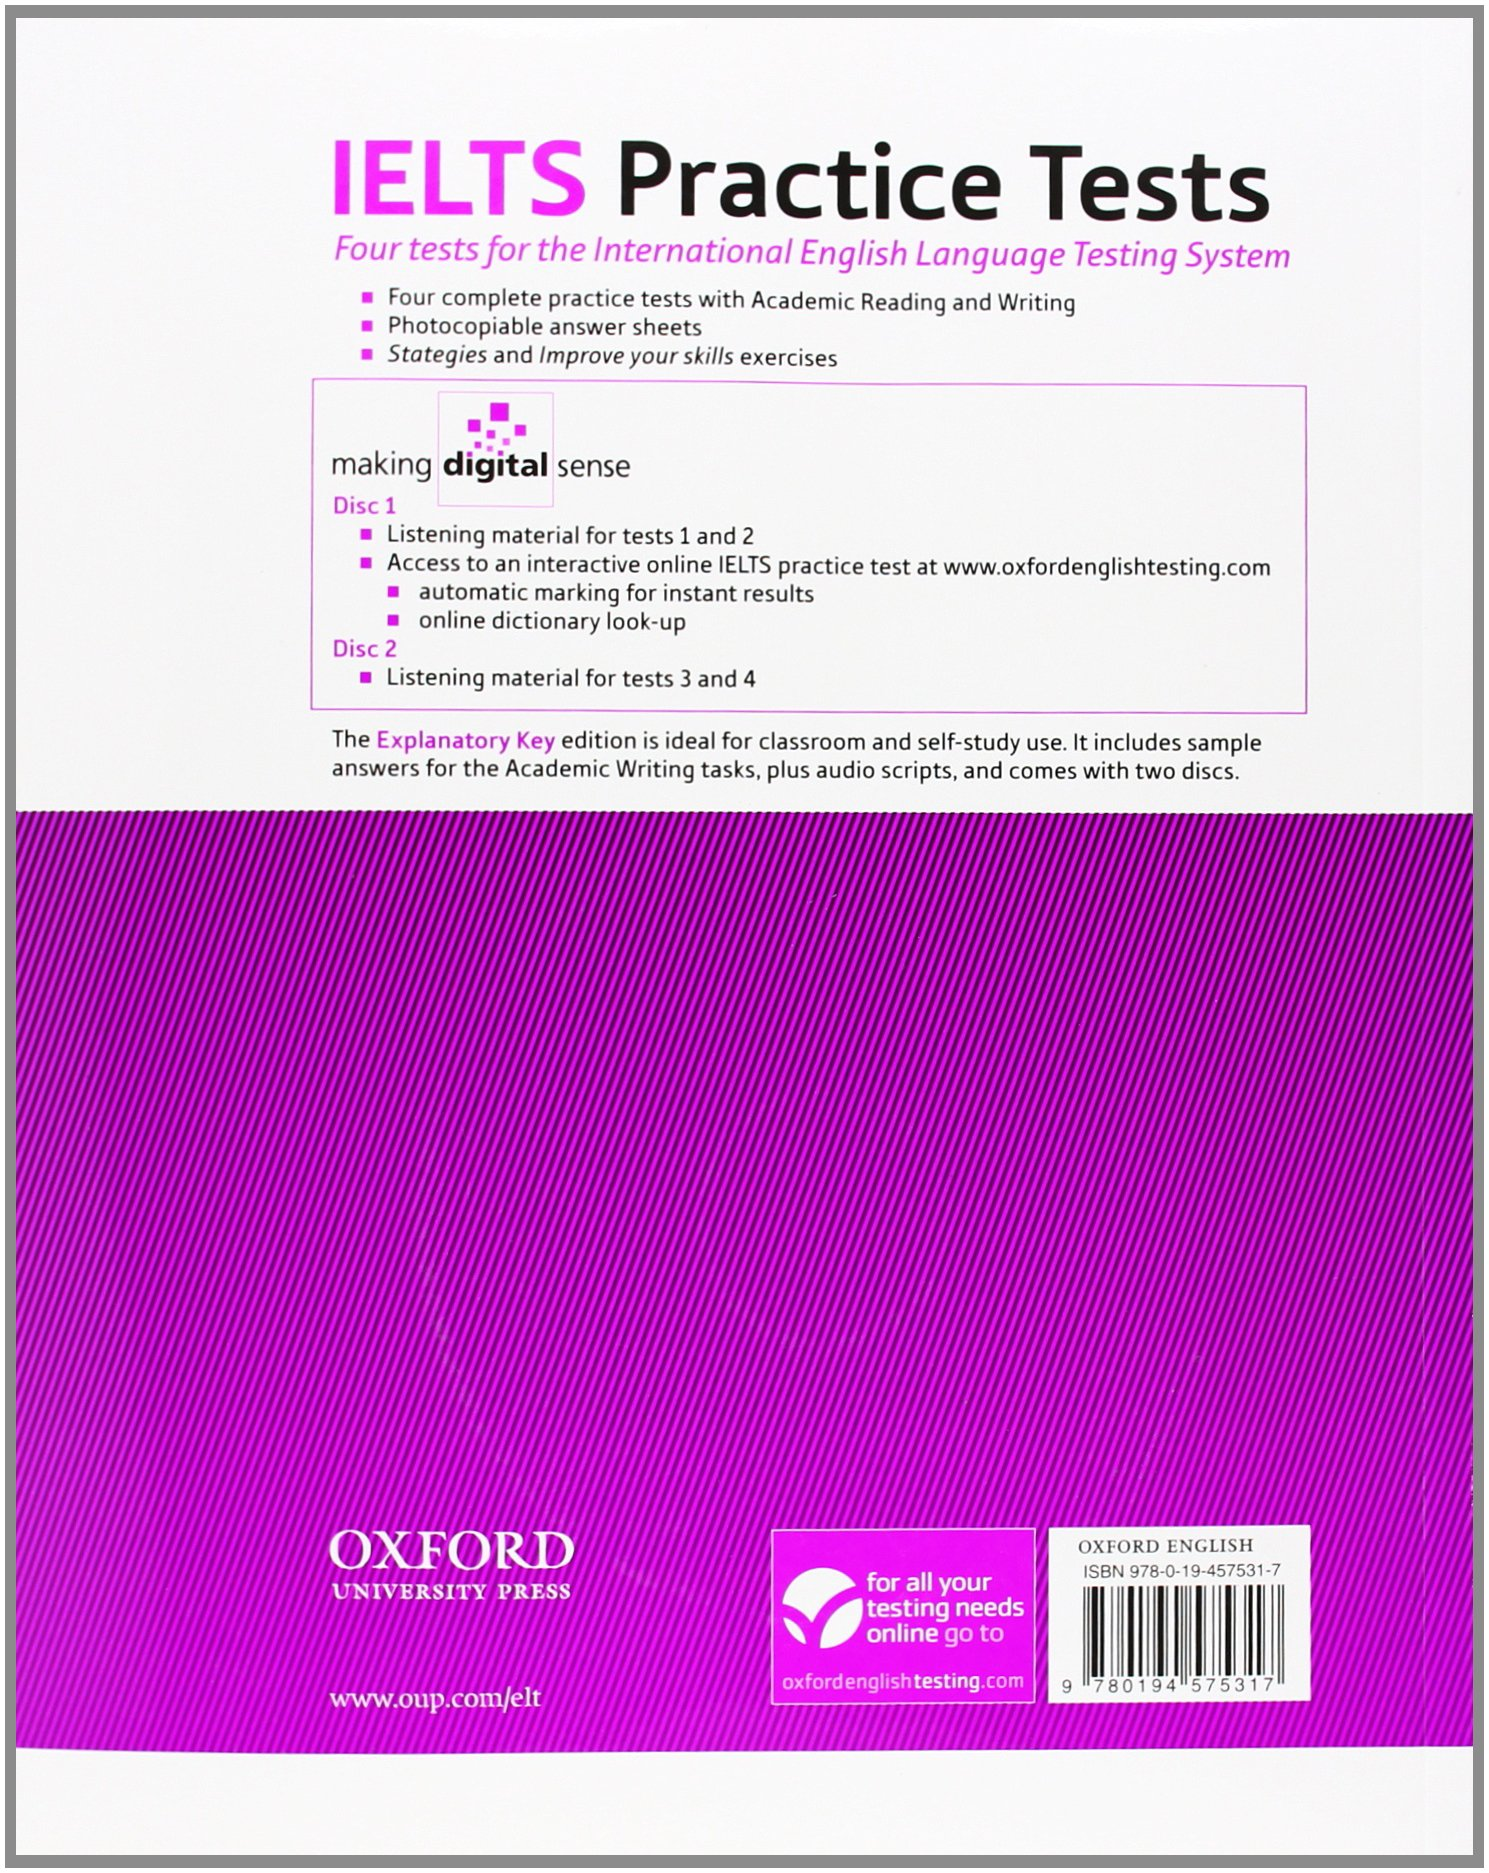 Ielts practice tests with explanatory key and audio cds 2 pack with key amazon co uk peter may 9780194575317 books